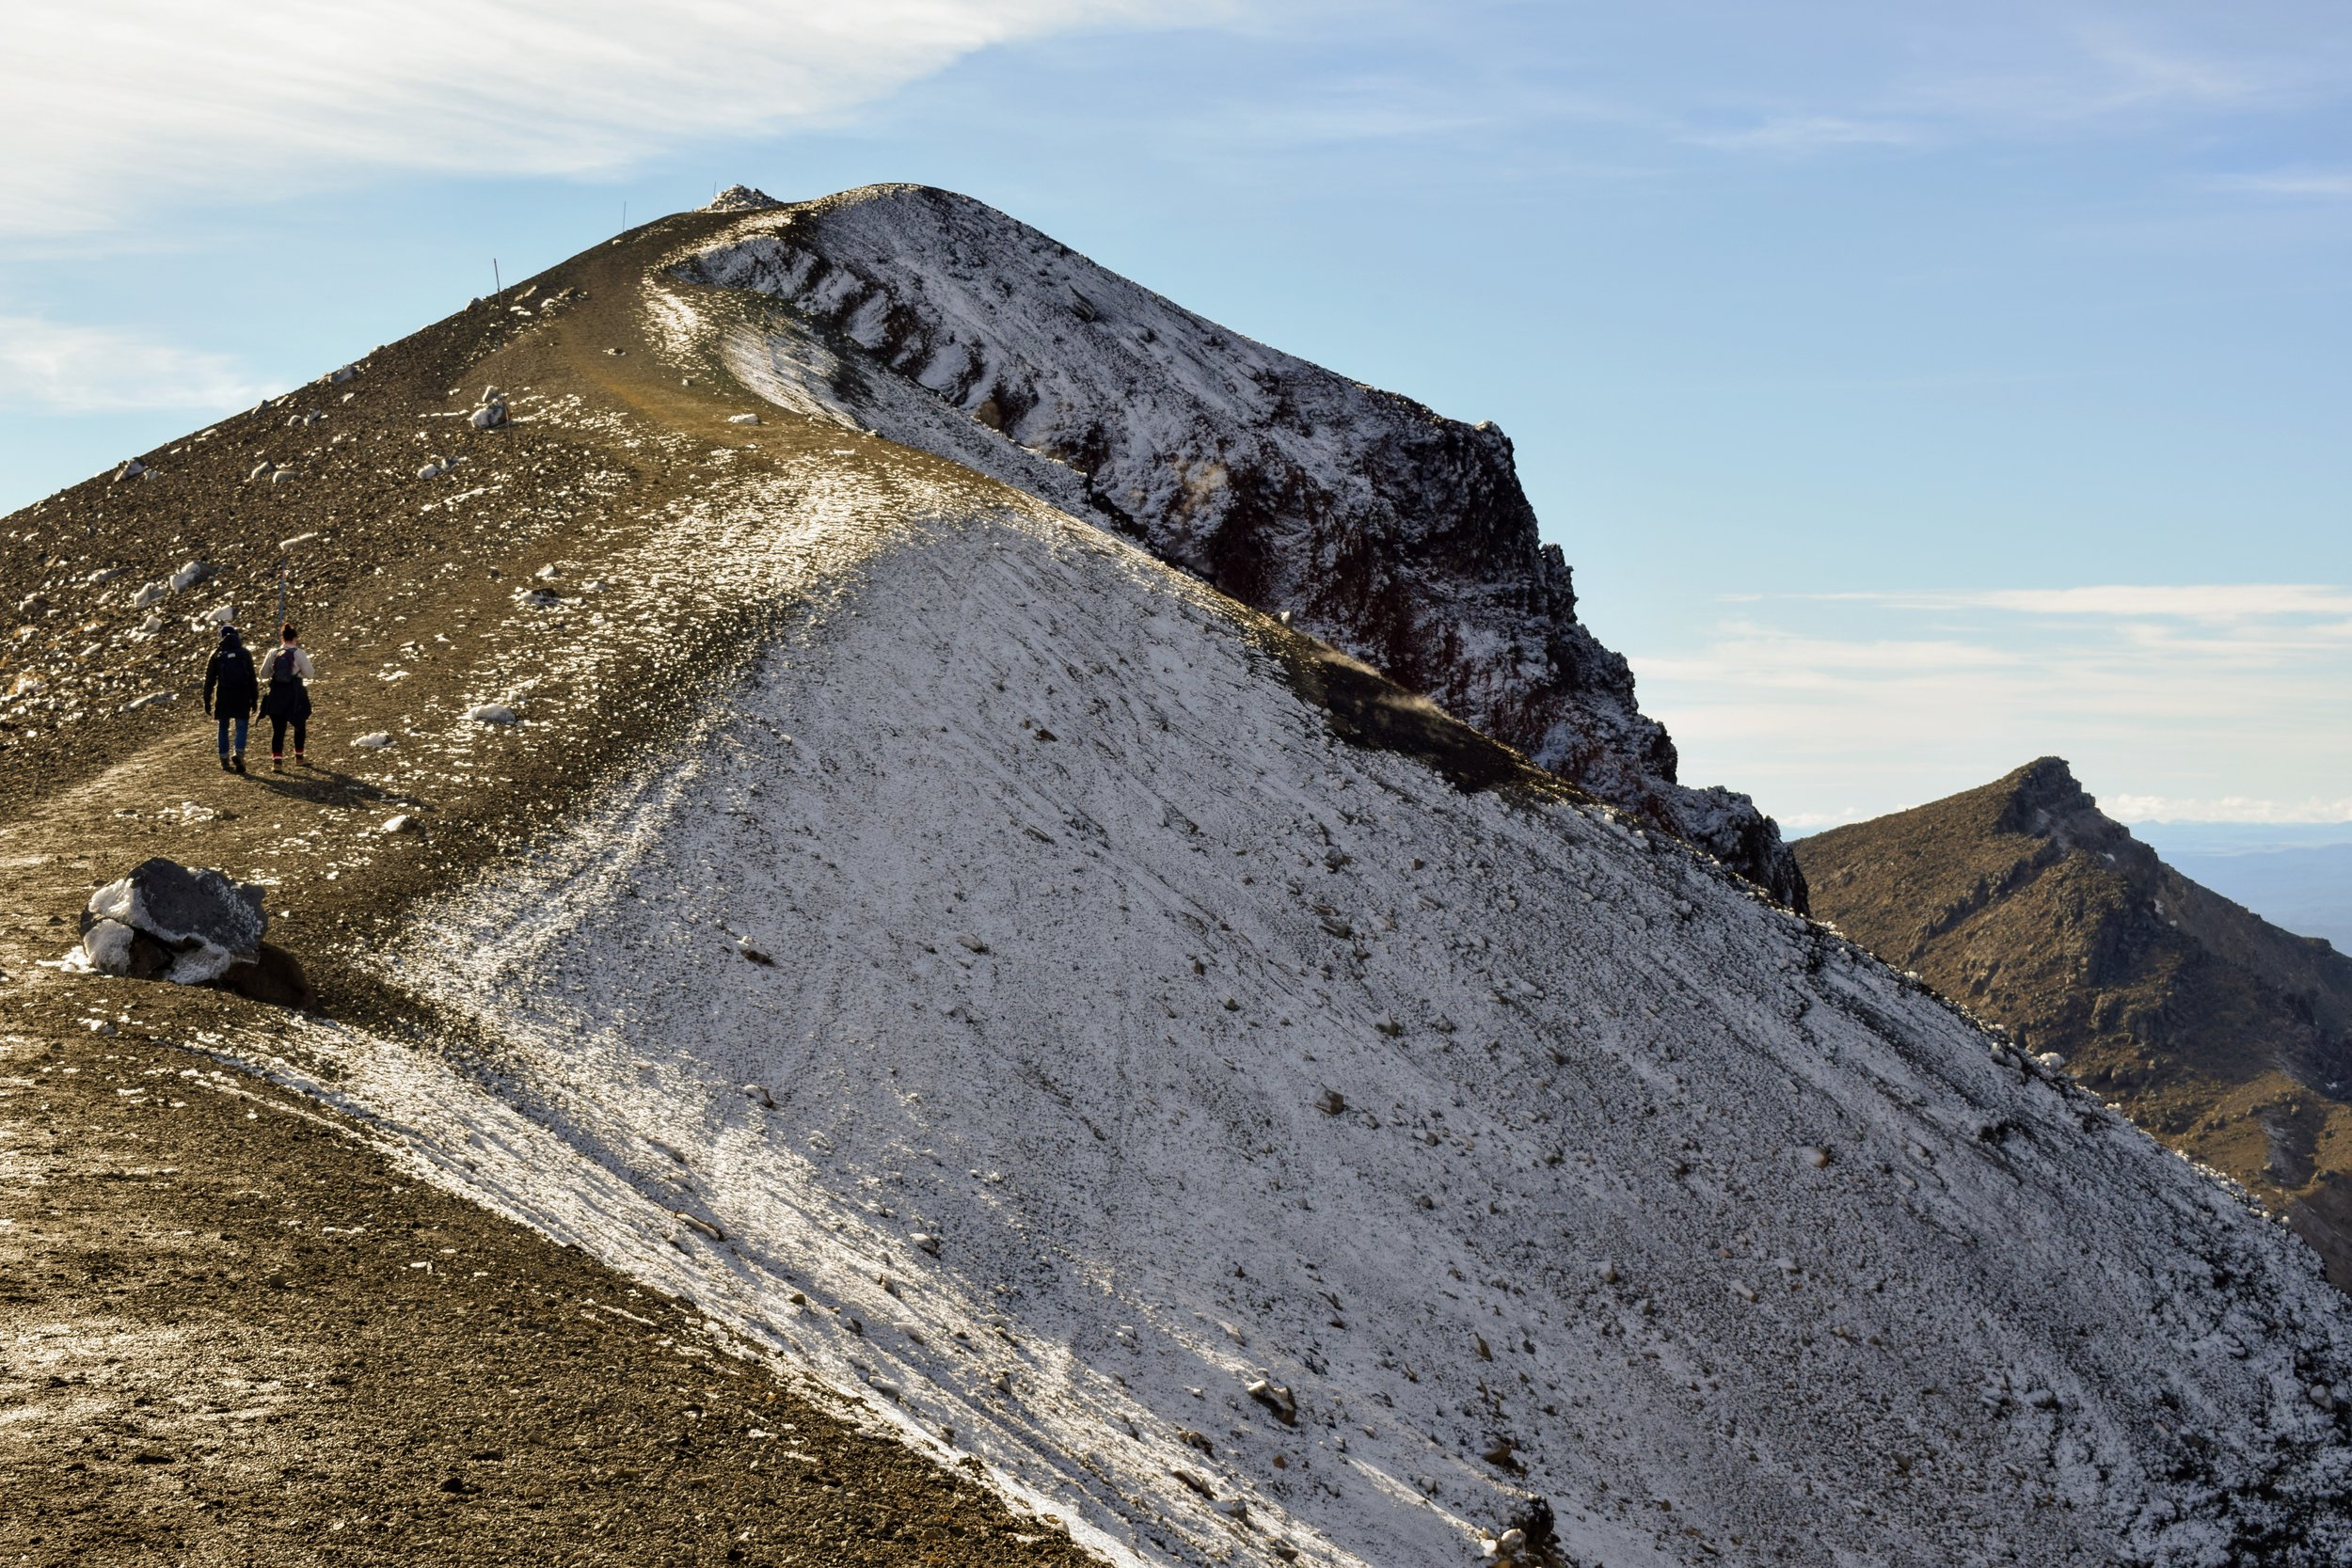 The steep path along the Red Crater's snowy edge.